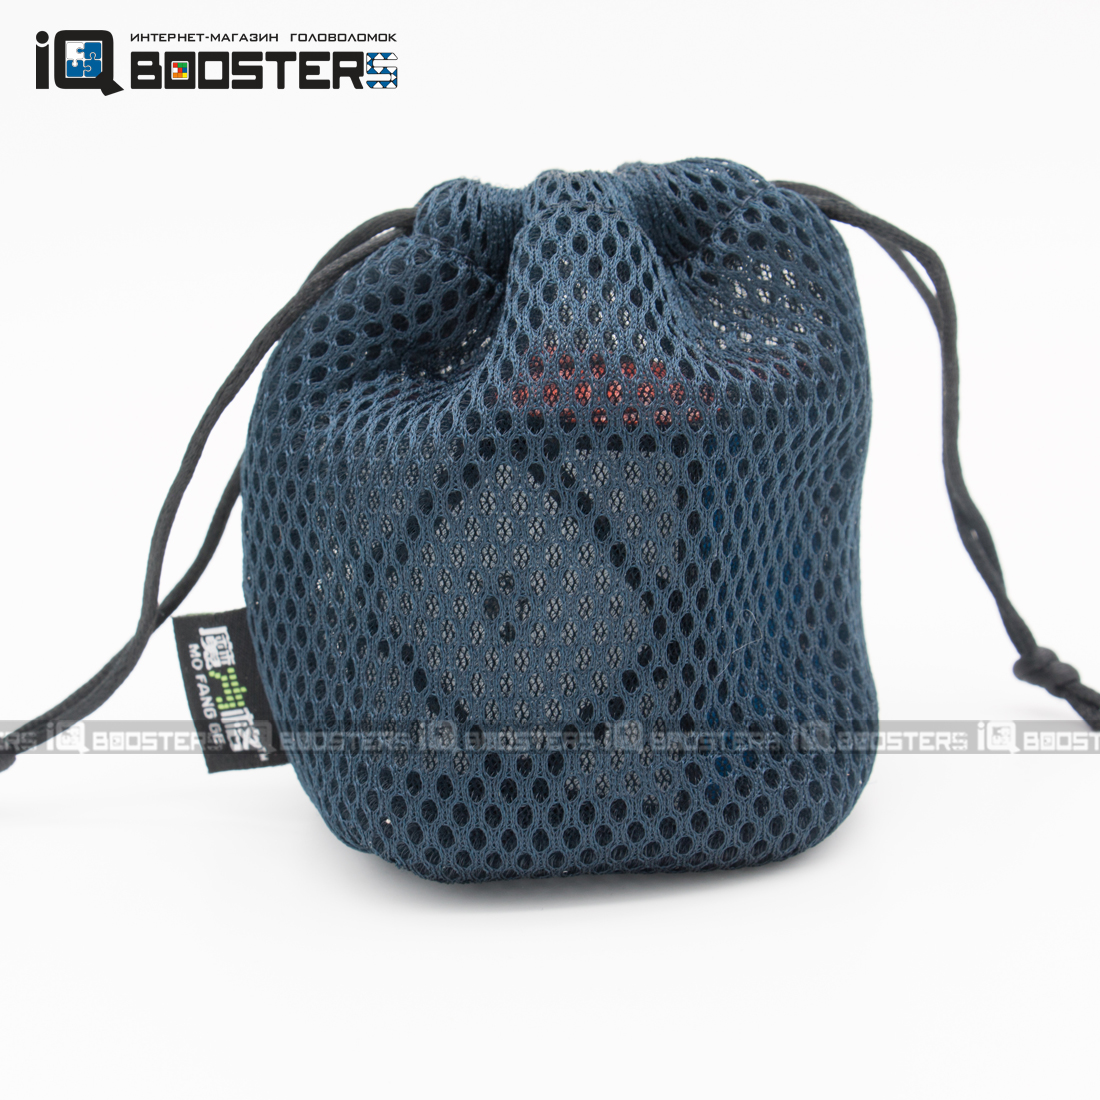 qiyi_mfg_cubebag_3